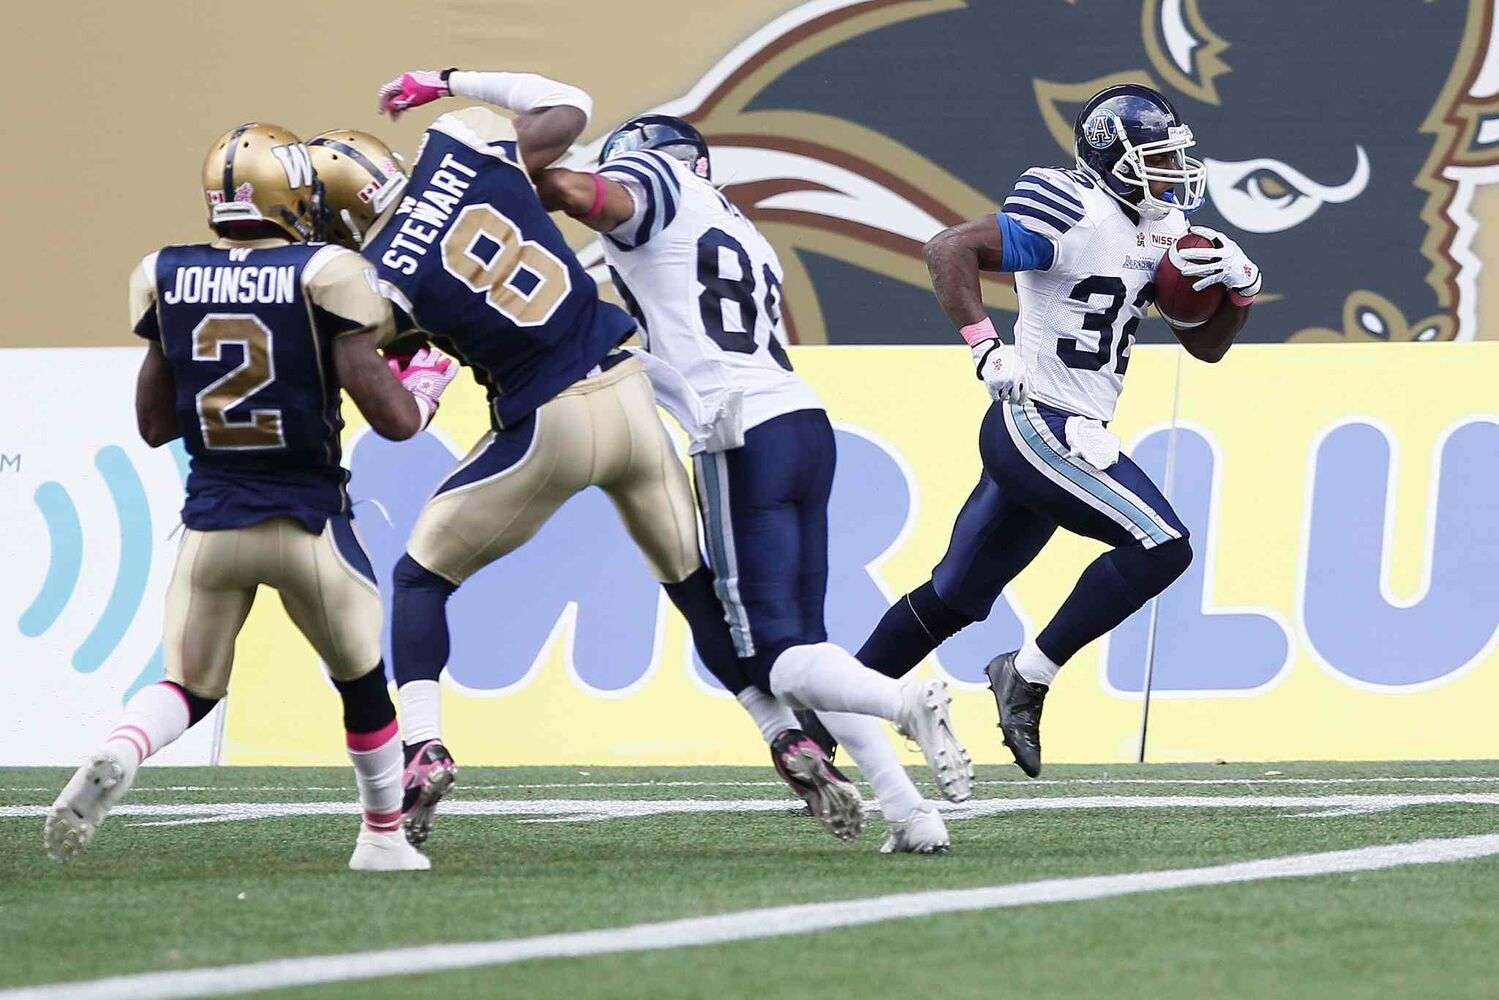 Toronto Argonauts' Andre Durie (32) runs in a touchdown during the first half. (JOHN WOODS / THE CANADIAN PRESS)